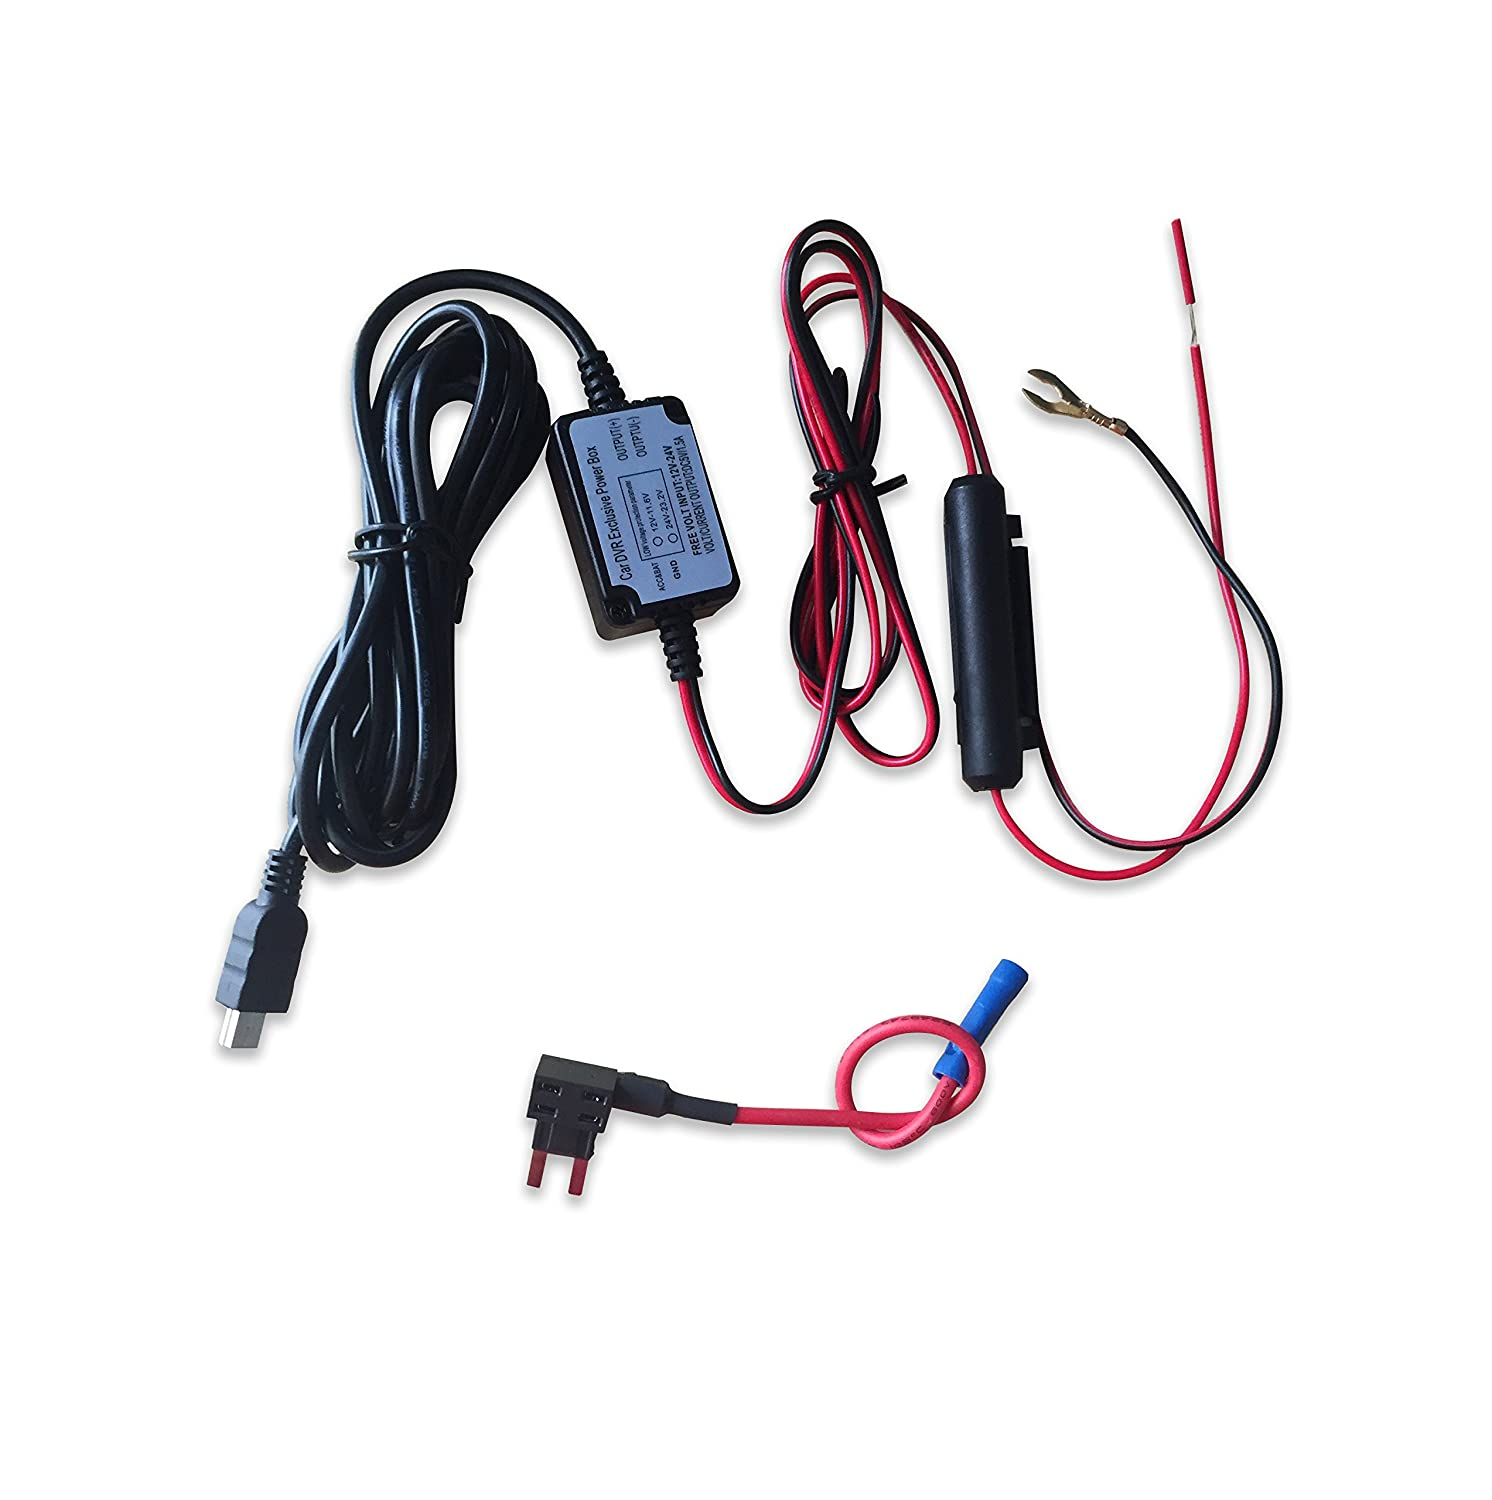 81vasrBJwWL._SL1500_ amazon com wocst car camera hard wire kit mini usb dash cam 10 House Fuse Box Diagram at mr168.co